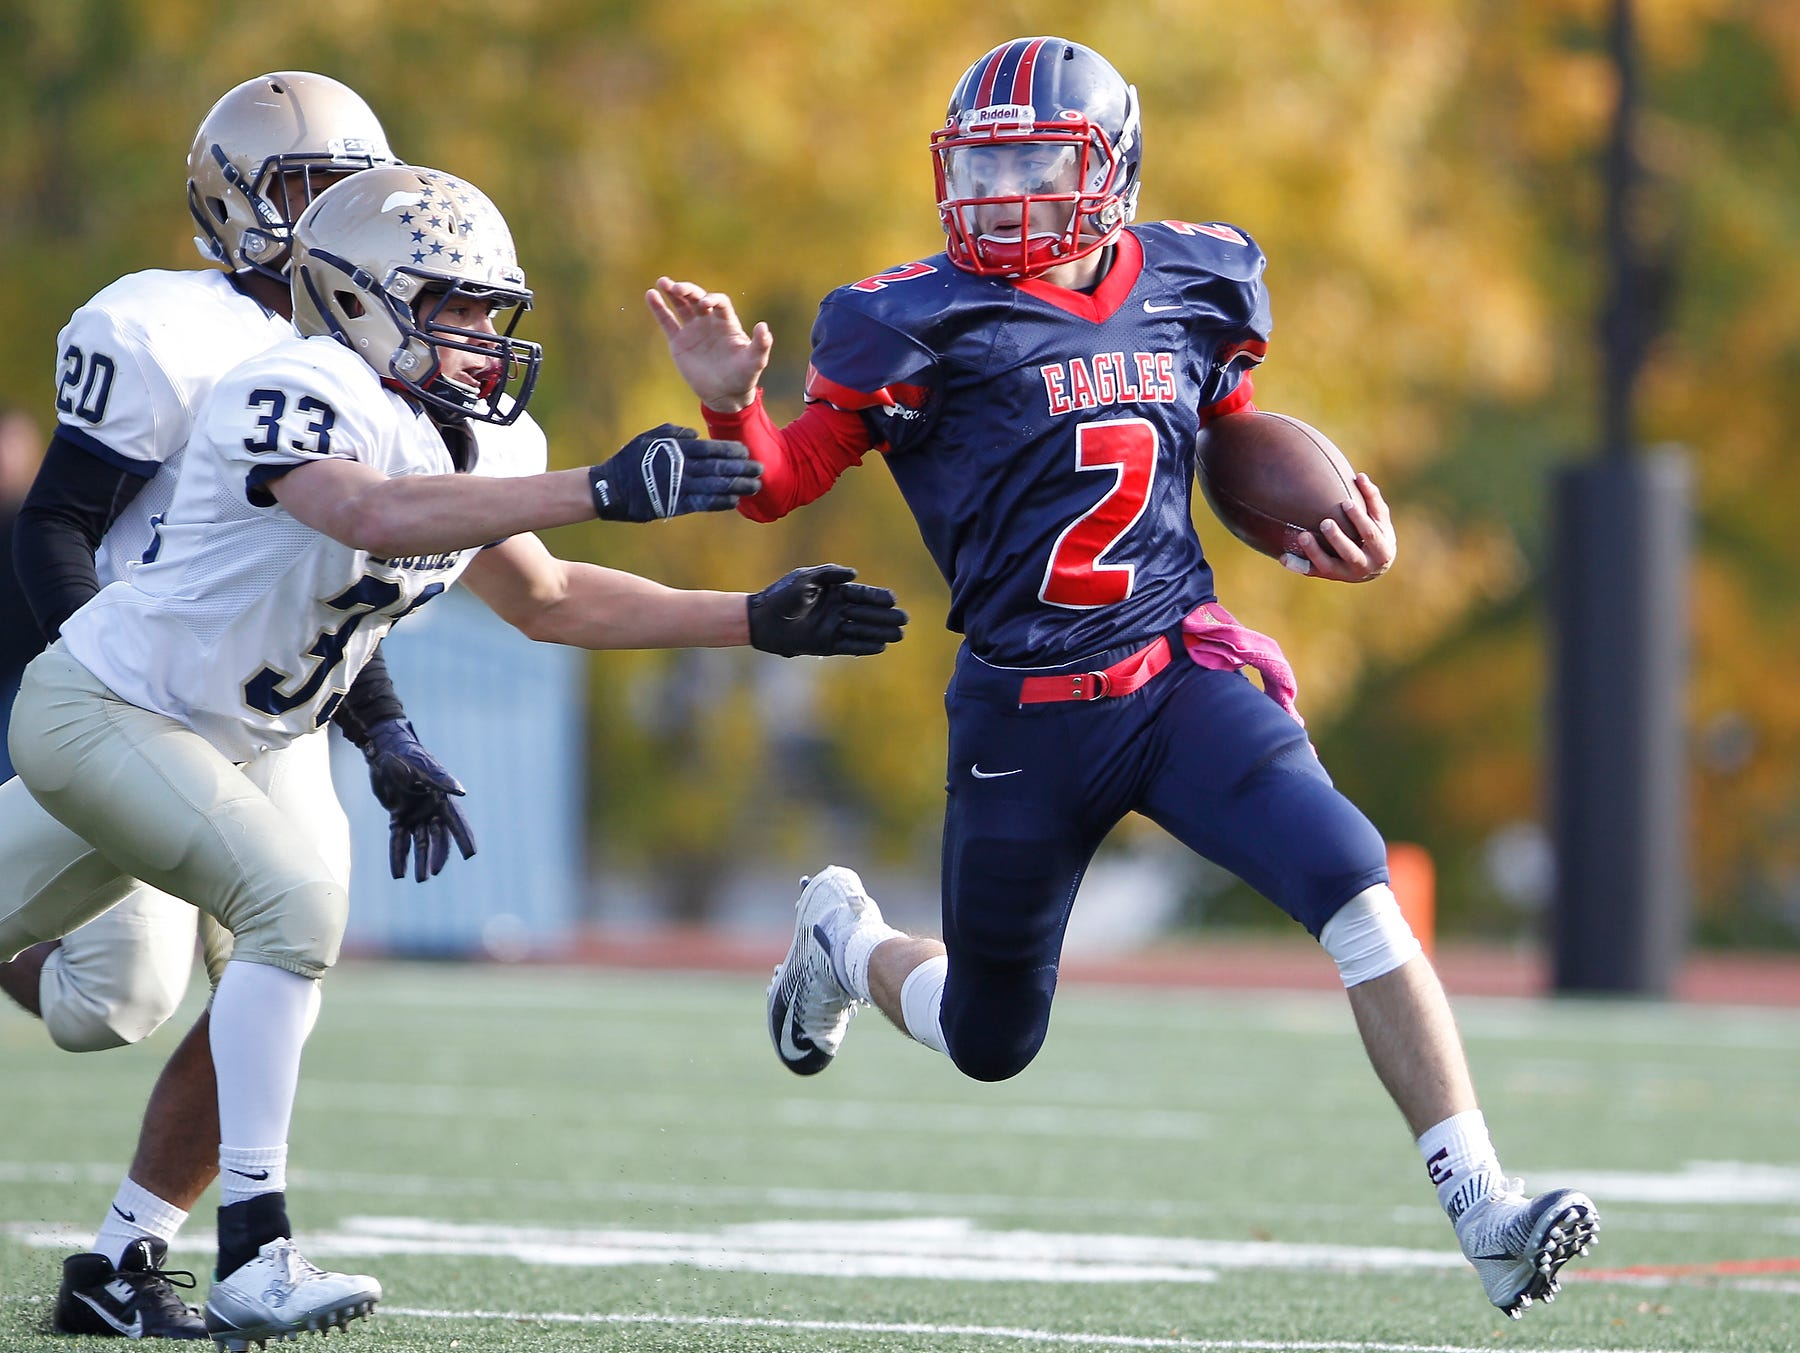 Eastchester quarterback John Arcidiacono (2) fends off Lourdes' line backer Joe Scallion (33) during their 19-27 loss to Our Lady of Lourdes High School in the class A semi-final football game in Eastchester on Saturday, Oct. 31, 2015.